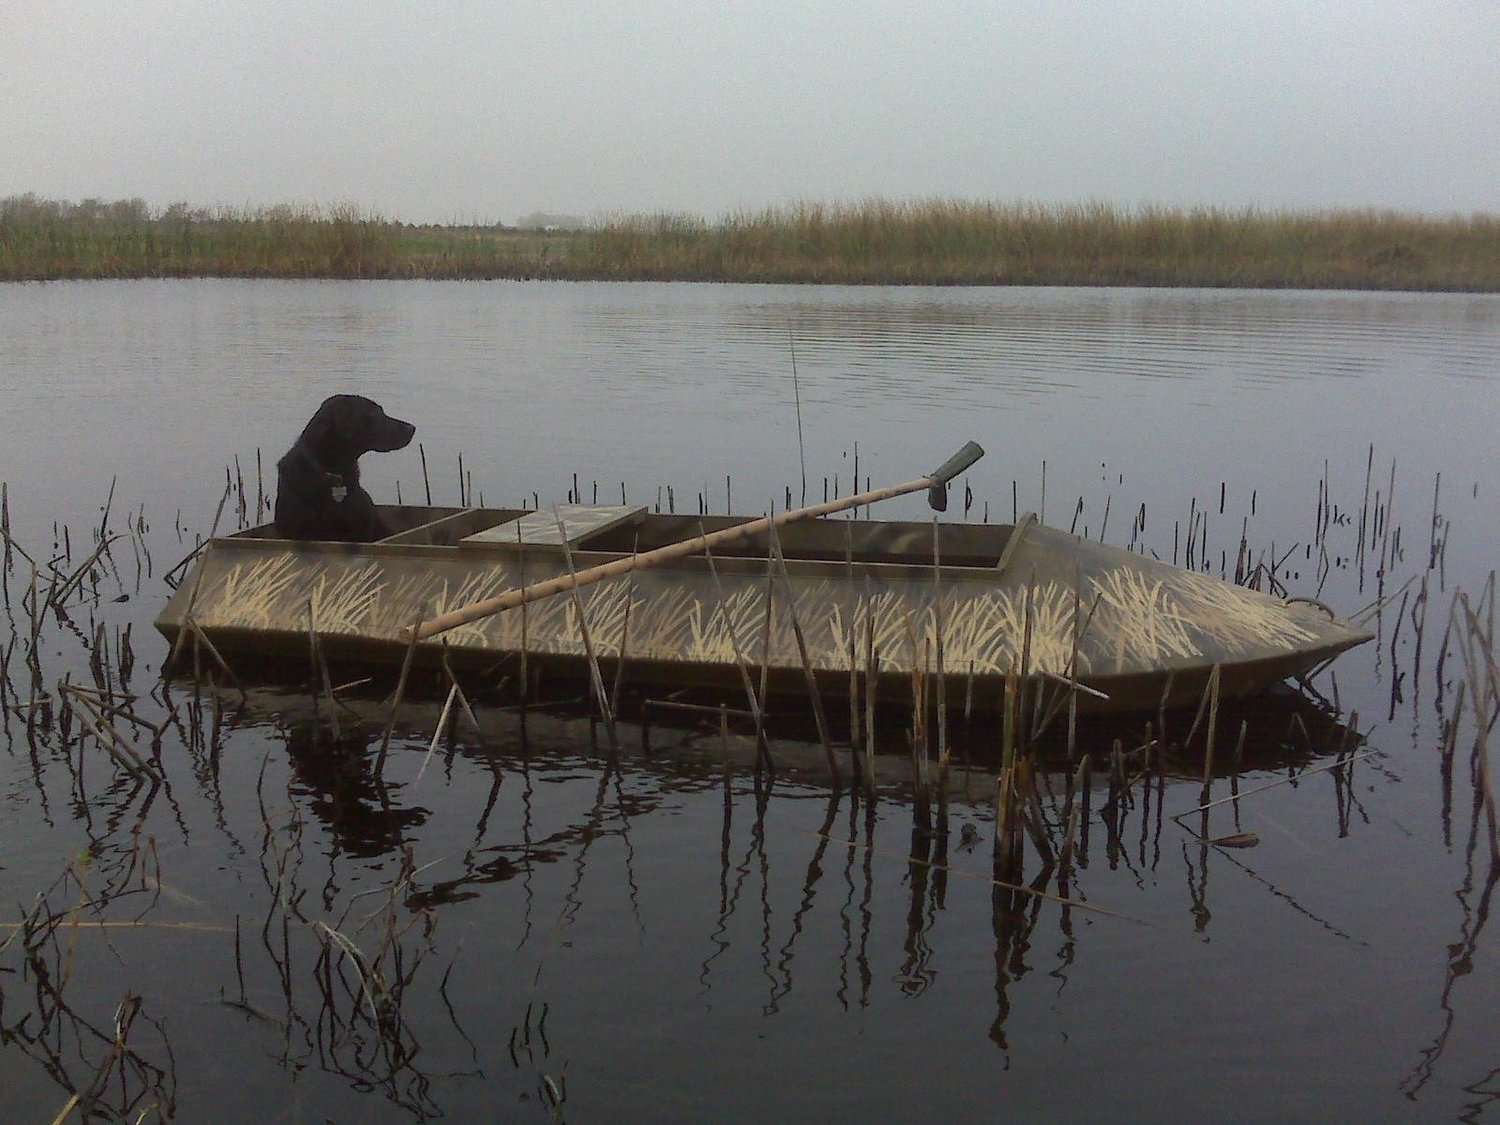 Pepper, Jim Girard's loyal black lab, waits patiently in his homemade duck boat. Jim found plans online and learned how to build this boat out of wood and fiberglass. It has proven a very stable little boat that still floats 10 years later.